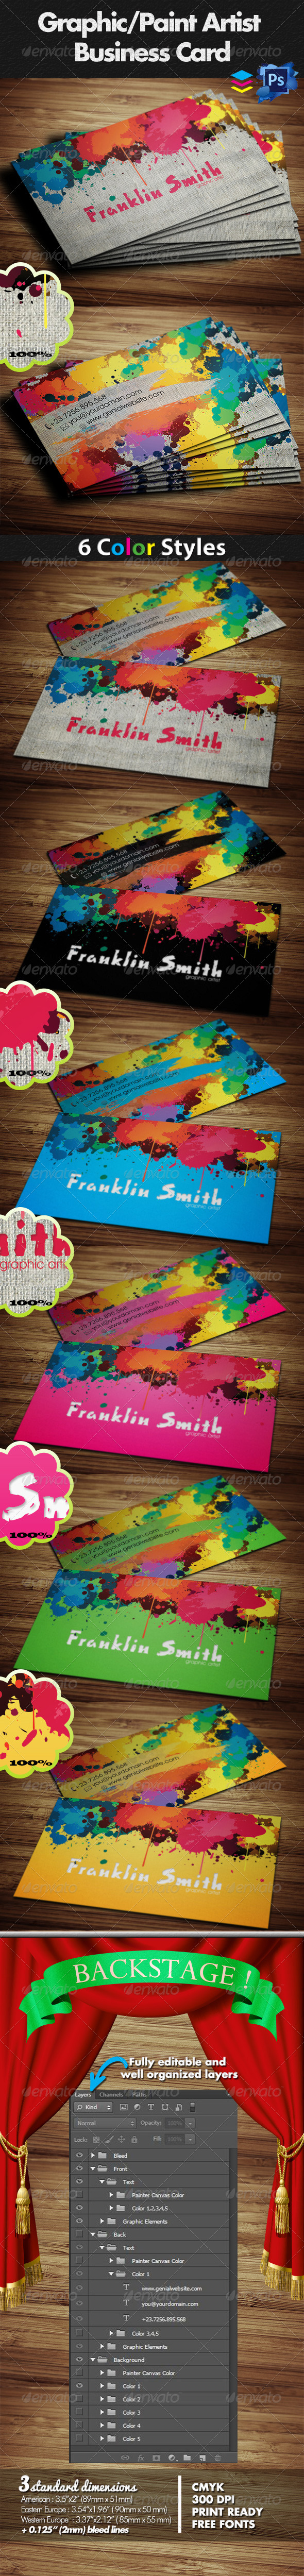 Graphic / Paint Artist Business Card - Creative Business Cards